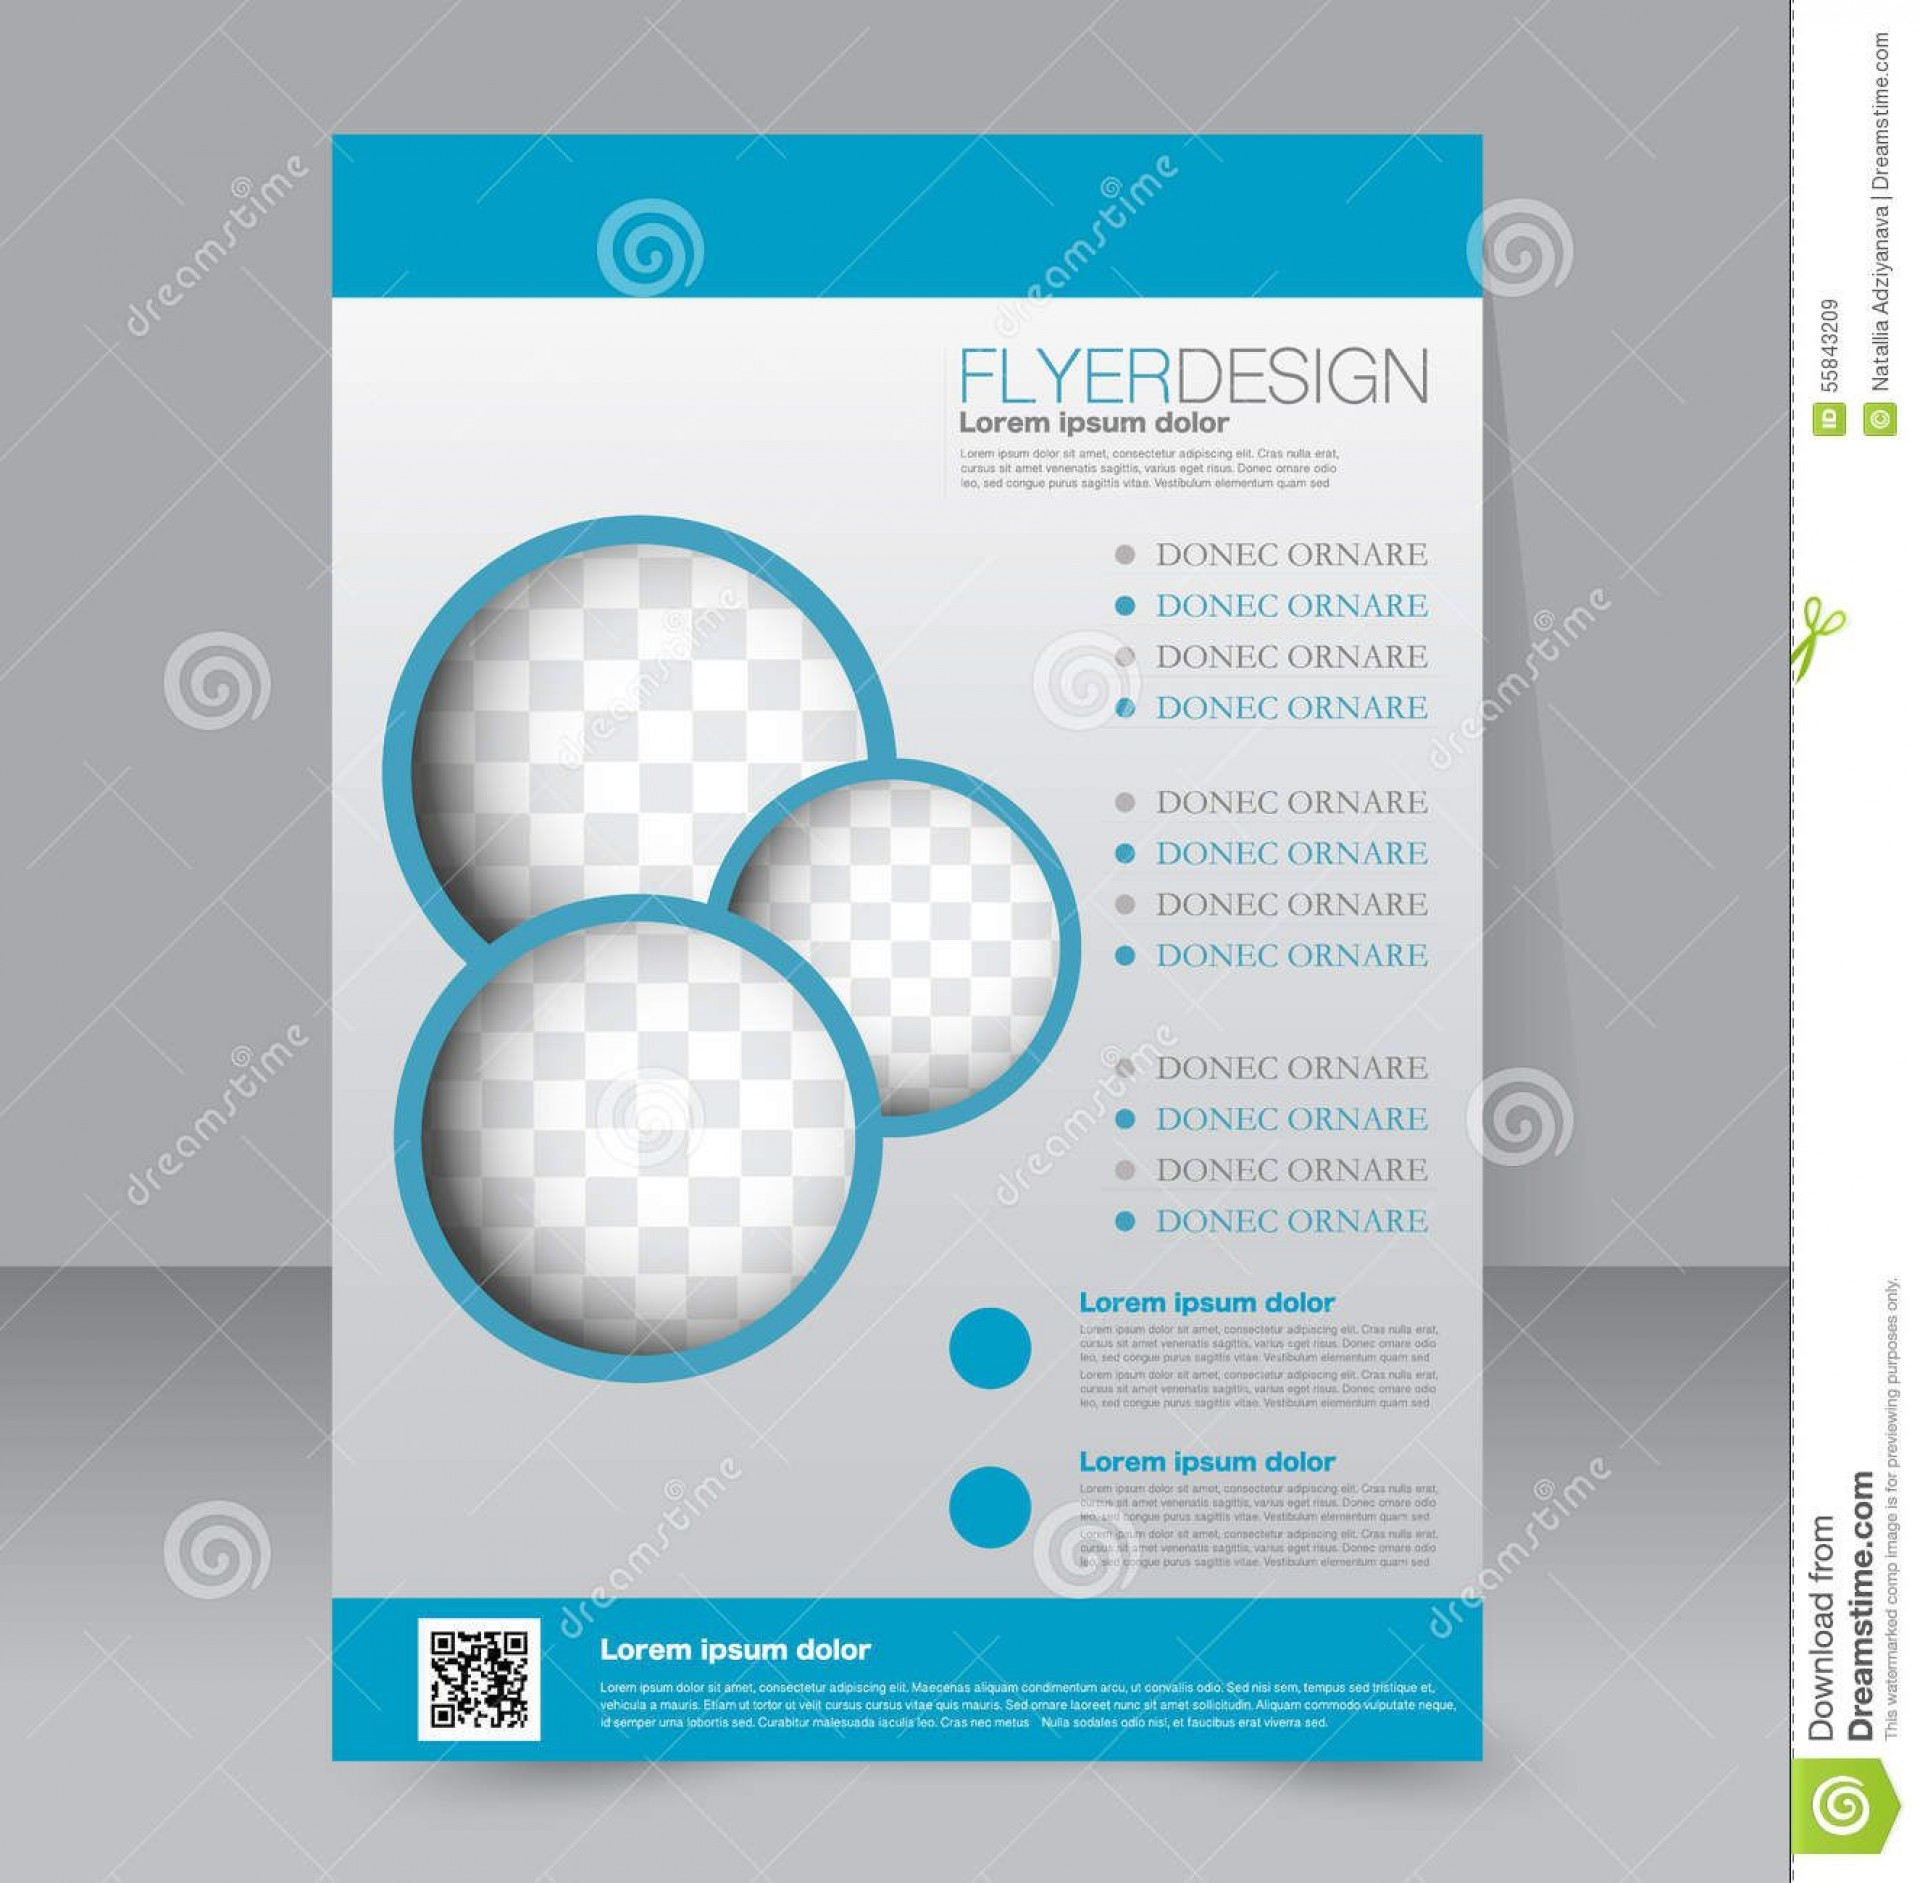 008 Stupendou Free Editable Flyer Template High Def  Busines Fundraising1920